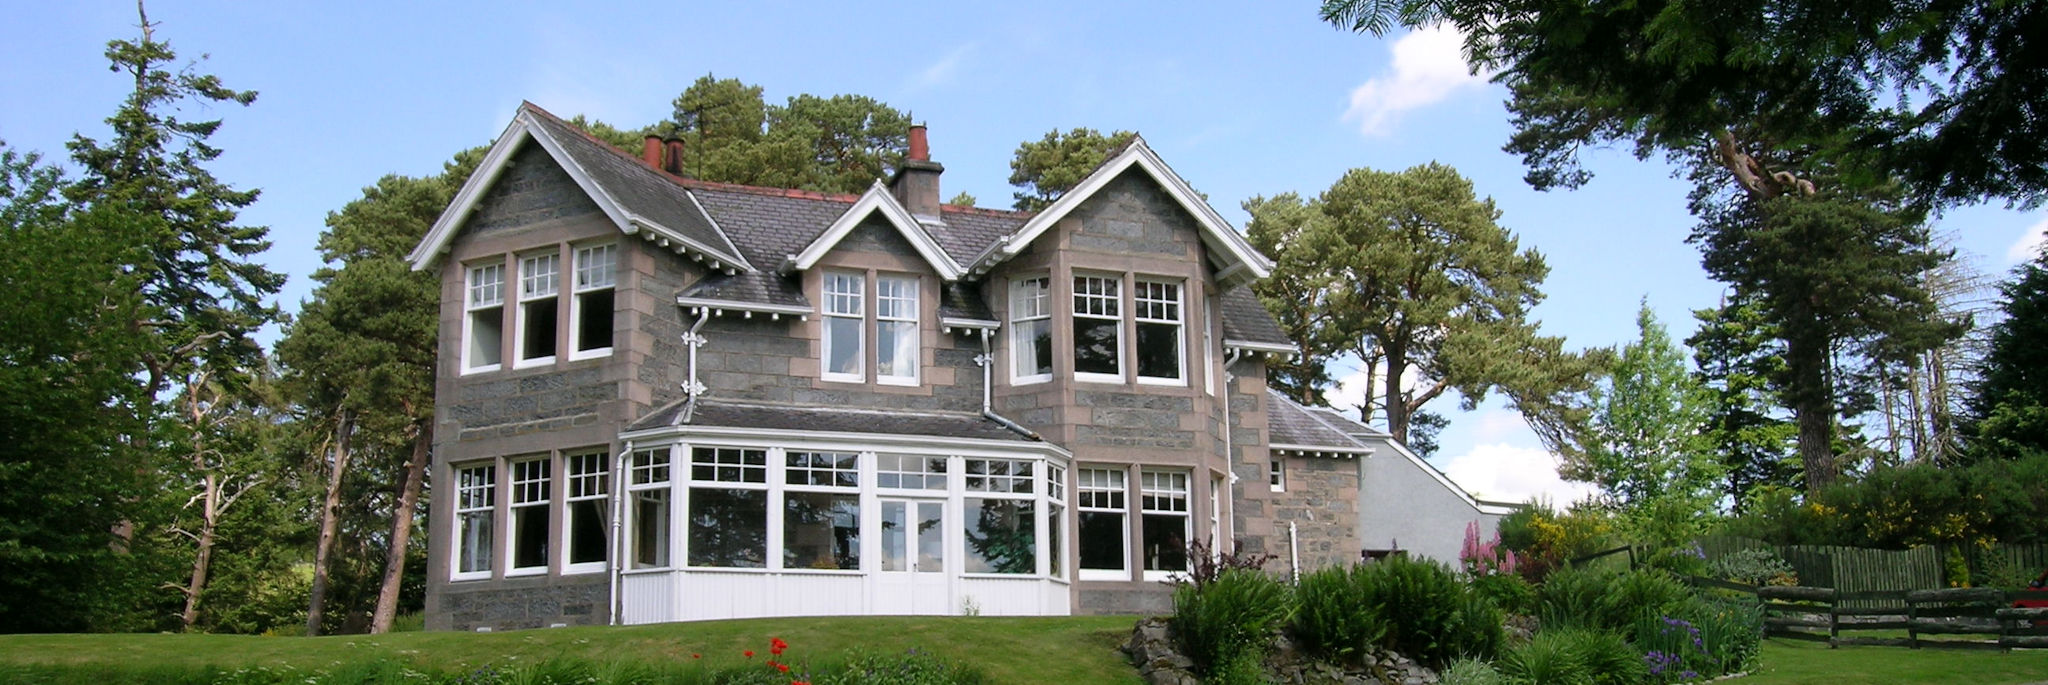 Coig na Shee Guest House in Newtonmore